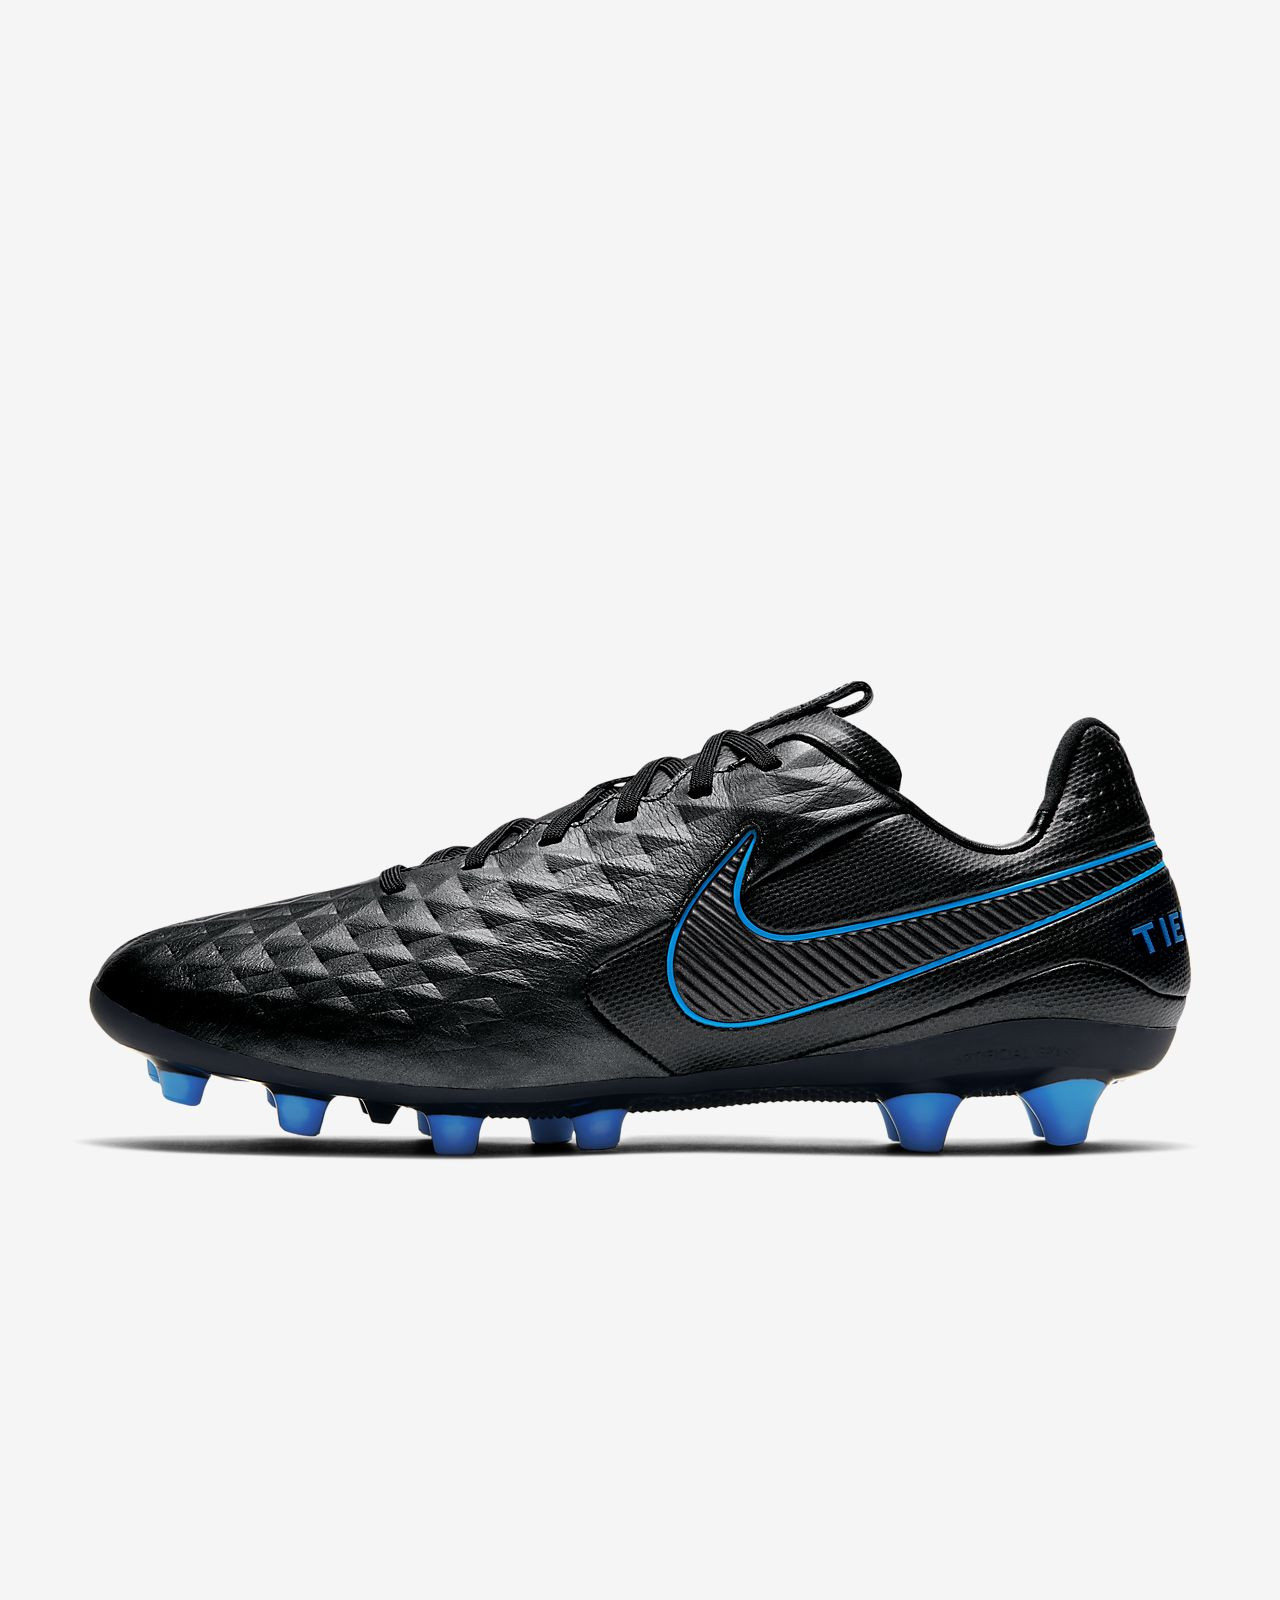 super specials free shipping cheap for discount Nike Tiempo Legend 8 Pro AG-PRO Artificial-Grass Football Boot